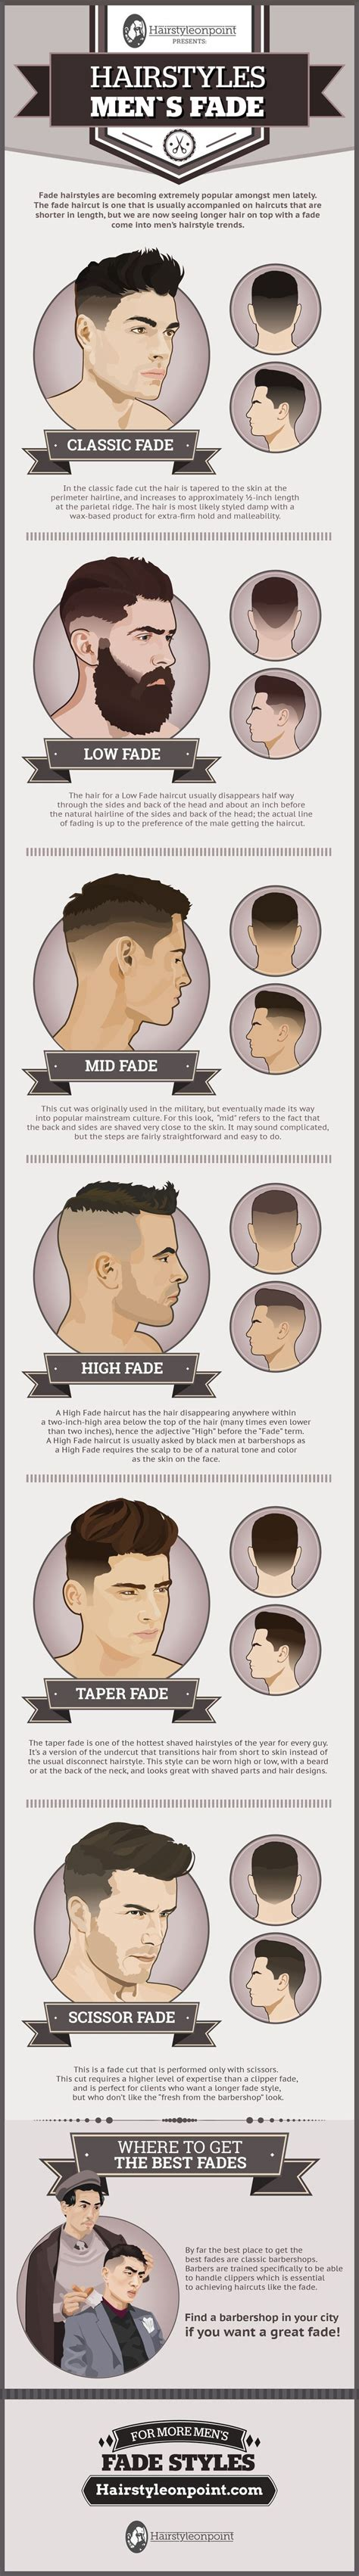 pictures of haircuts and their names barber hairstyles names hairstyles